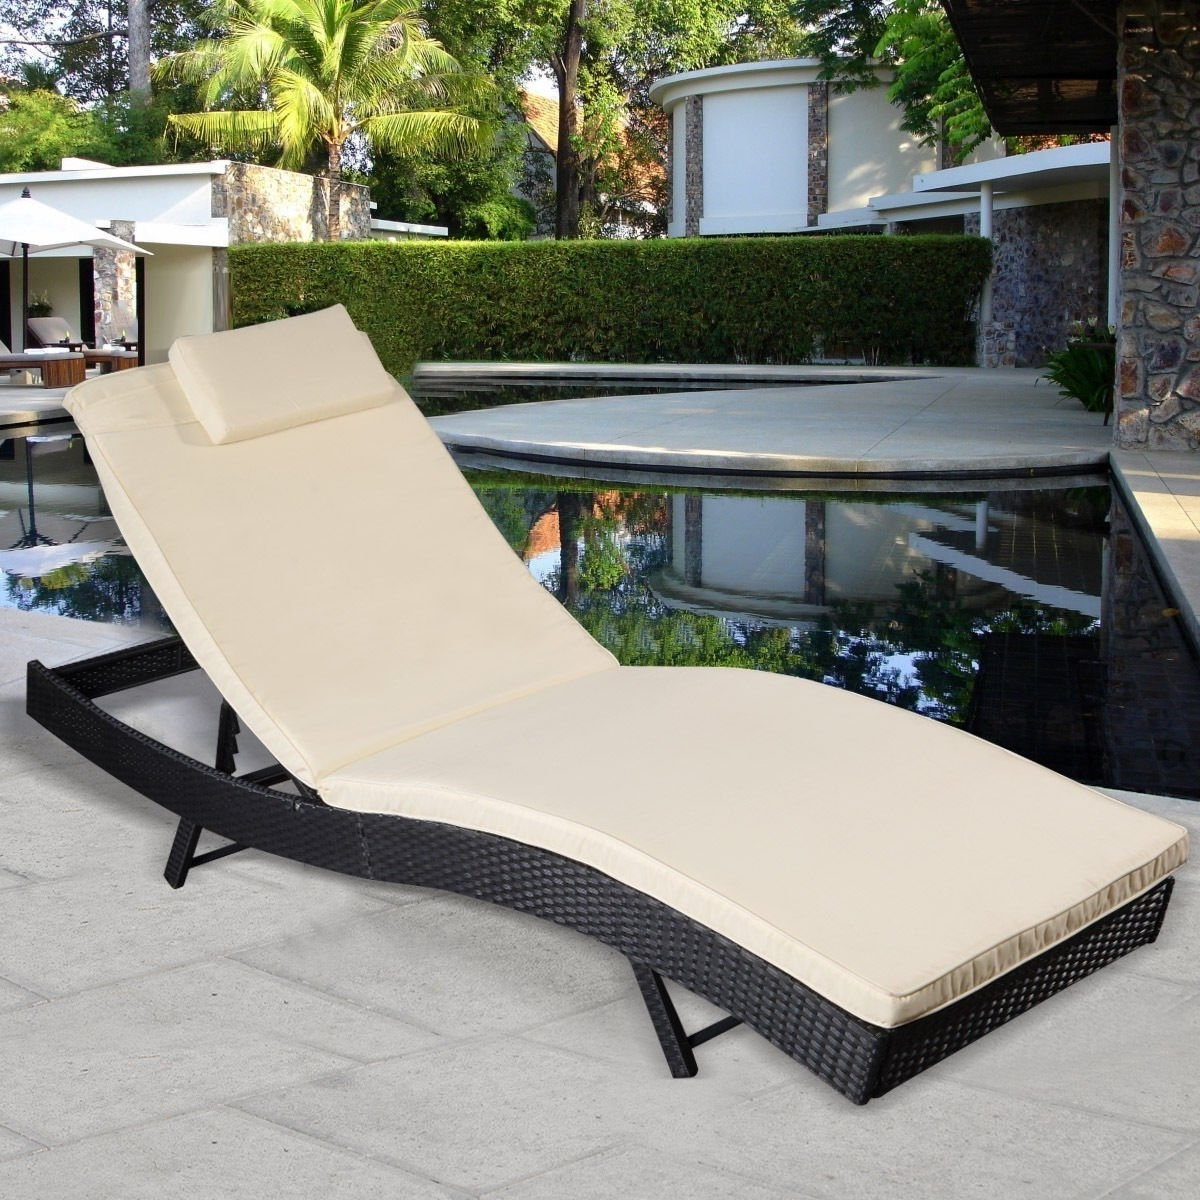 Amazon: Giantex Adjustable Pool Chaise Lounge Chair Outdoor Inside Recent Chaise Lounge Chairs Made In Usa (View 1 of 15)